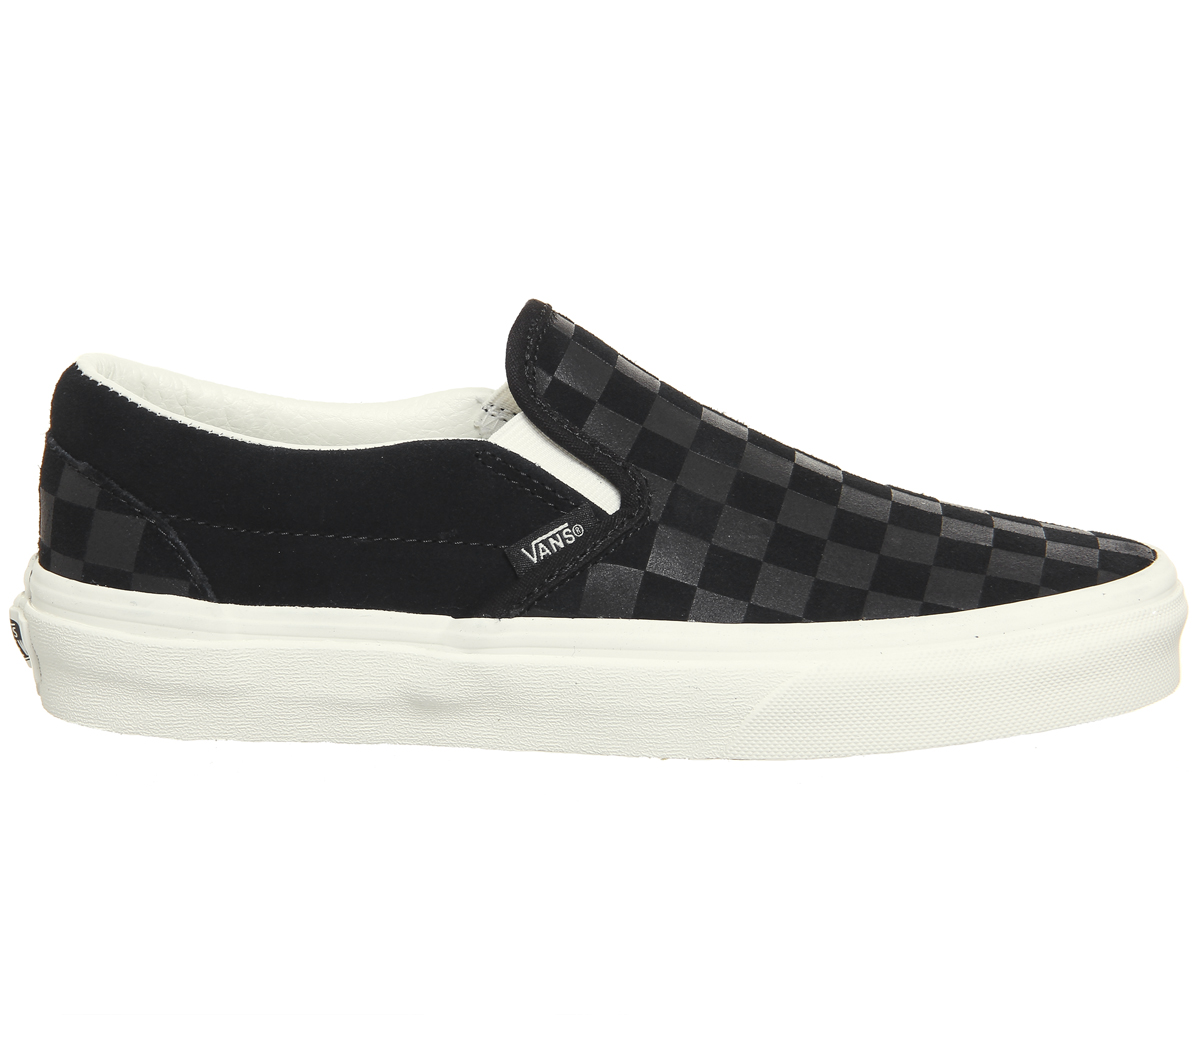 Sentinel Mens Vans Vans Classic Slip On Trainers Black Marshmallow  Checkerboard Trainers 8c3f53222